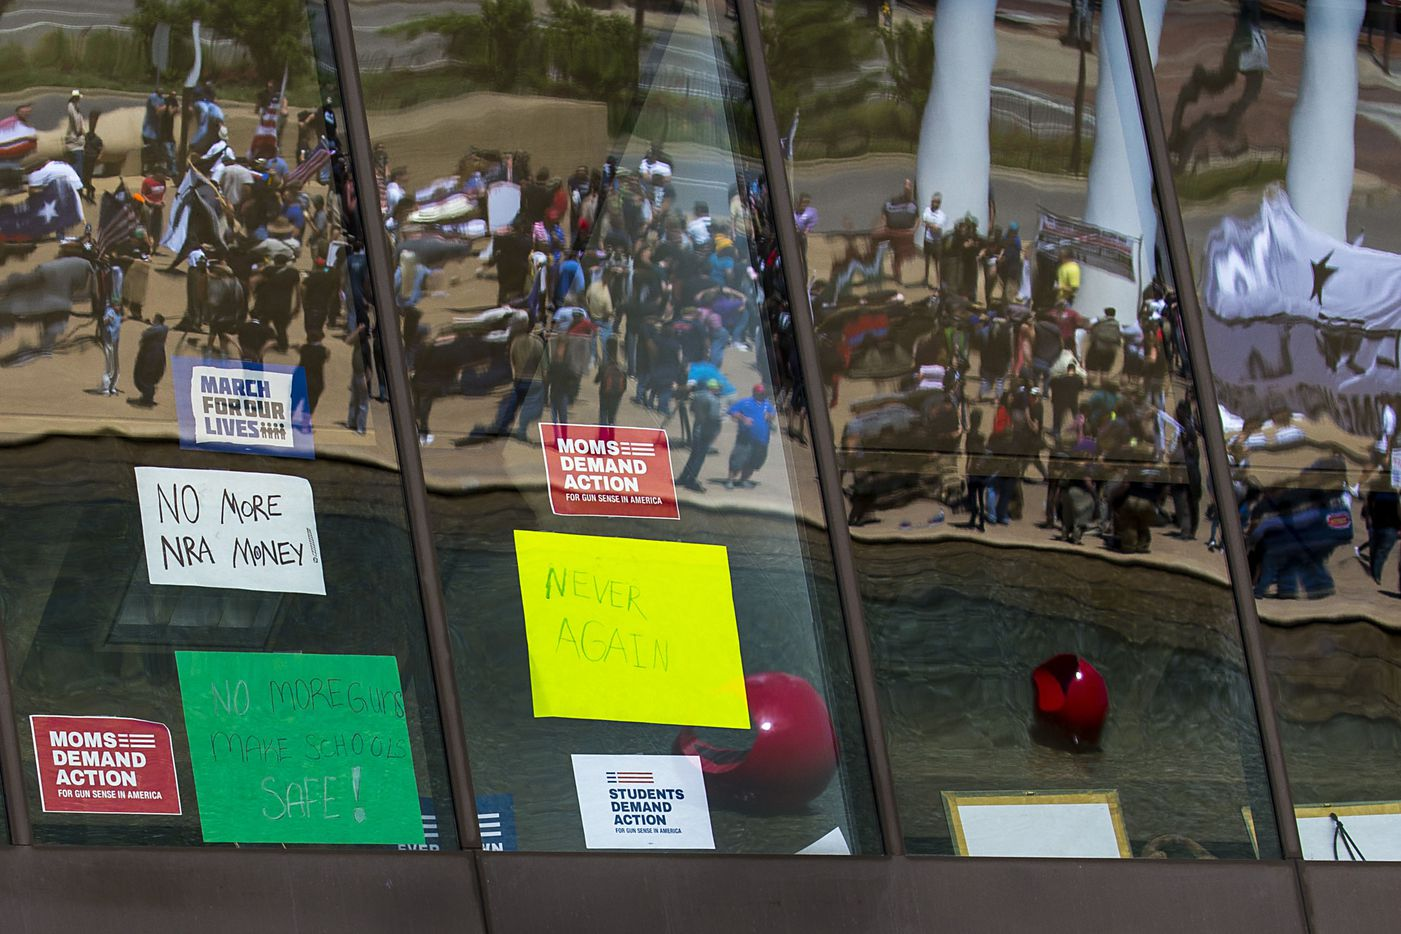 Gun rights advocates are reflected in Dallas City Hall, where a selection of gun control signs can be seen in the windows, as they demonstrate at a rally organized by Open Carry Texas during the NRA Annual Meeting & Exhibits at the Kay Bailey Hutchison Convention Center on Saturday, May 5, 2018, in Dallas. (Smiley N. Pool/The Dallas Morning News)